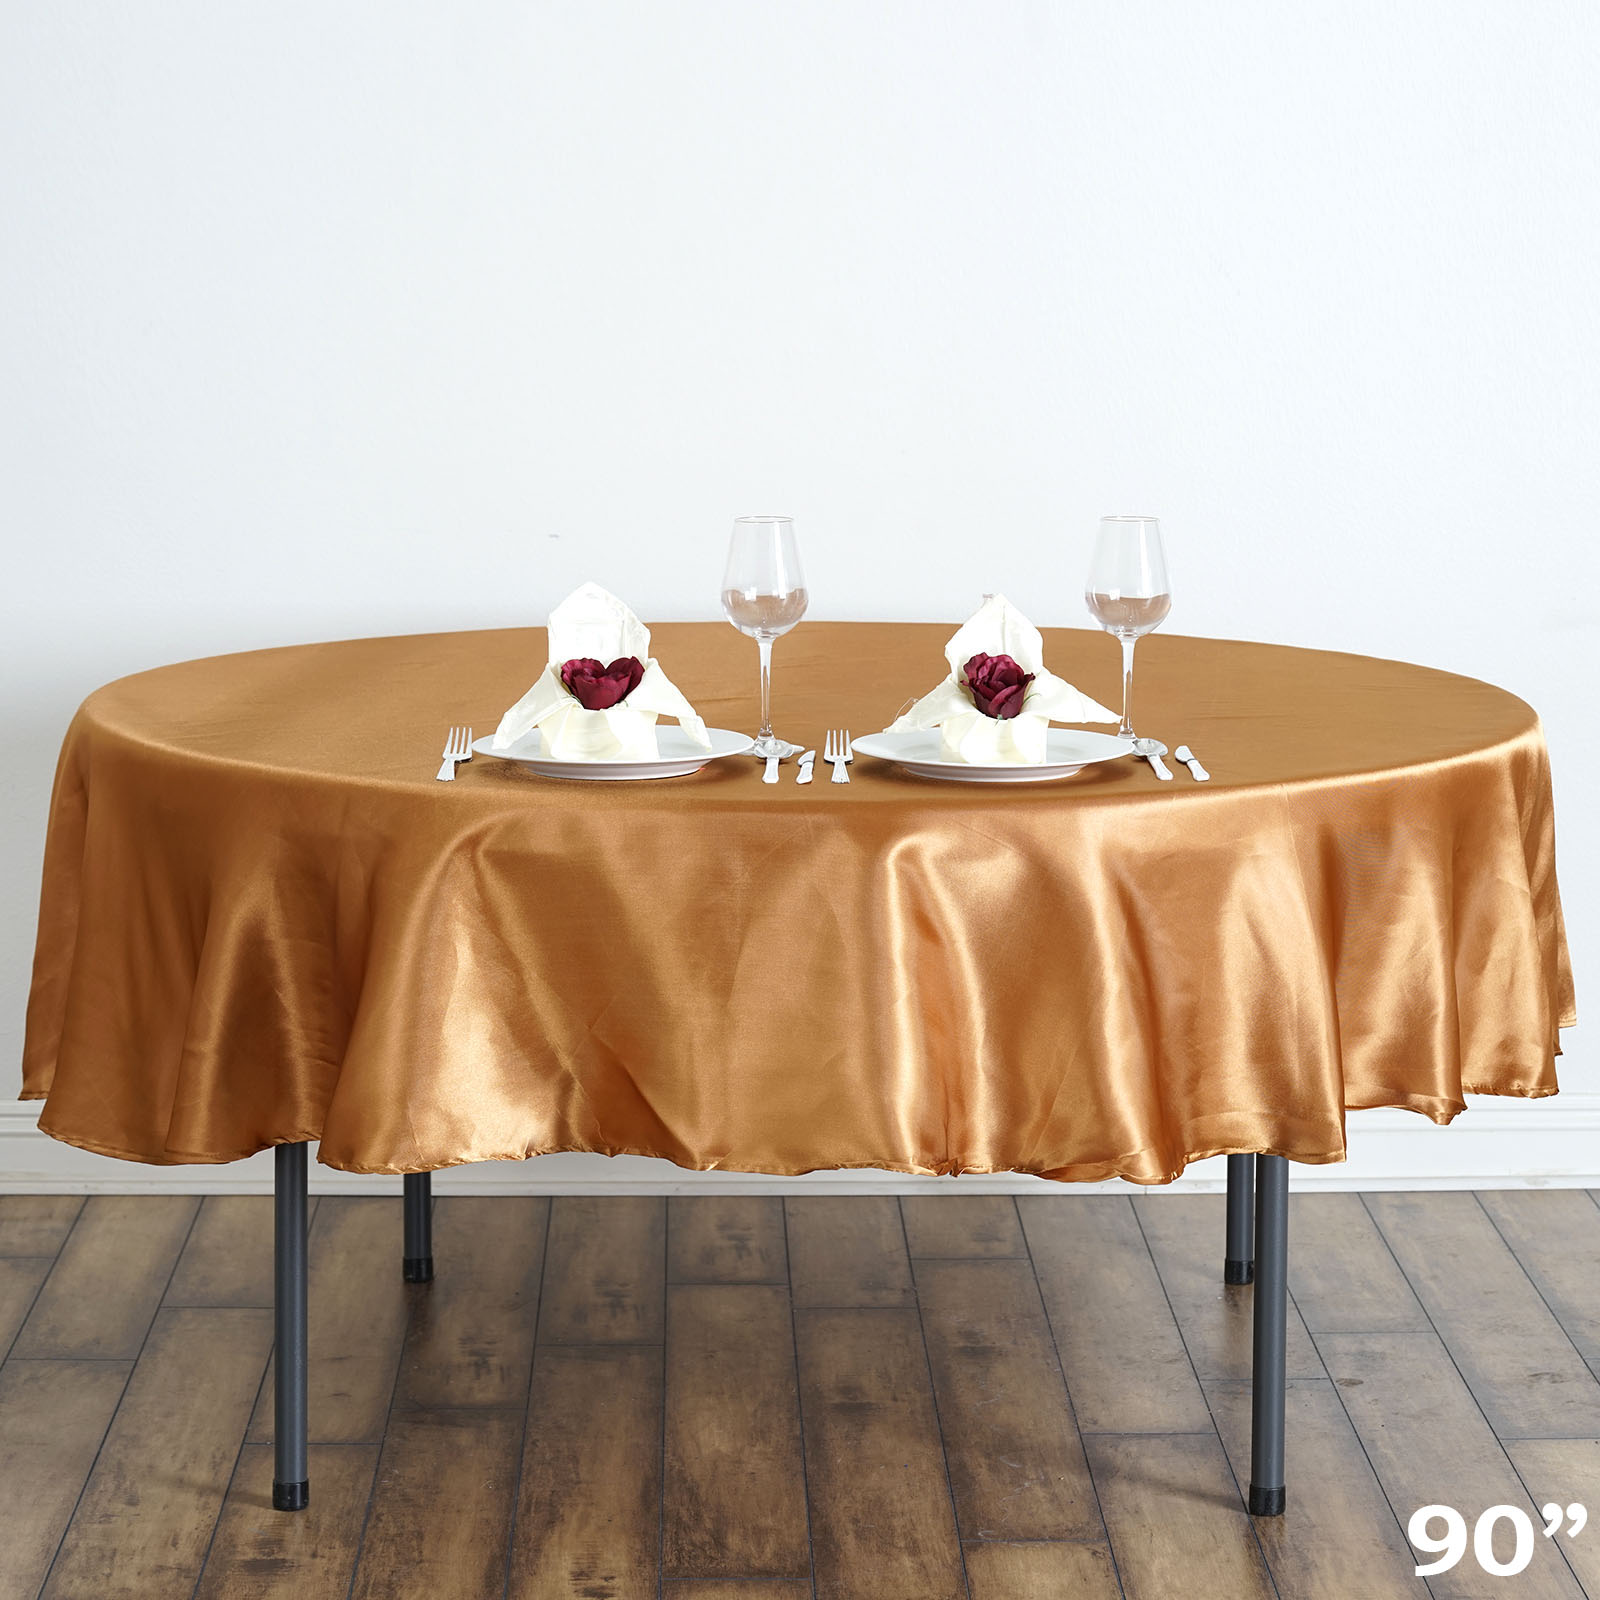 """Efavormart 90"""" Round Satin Tablecloth for Kitchen Dining Catering Wedding Birthday Party Decorations Events"""